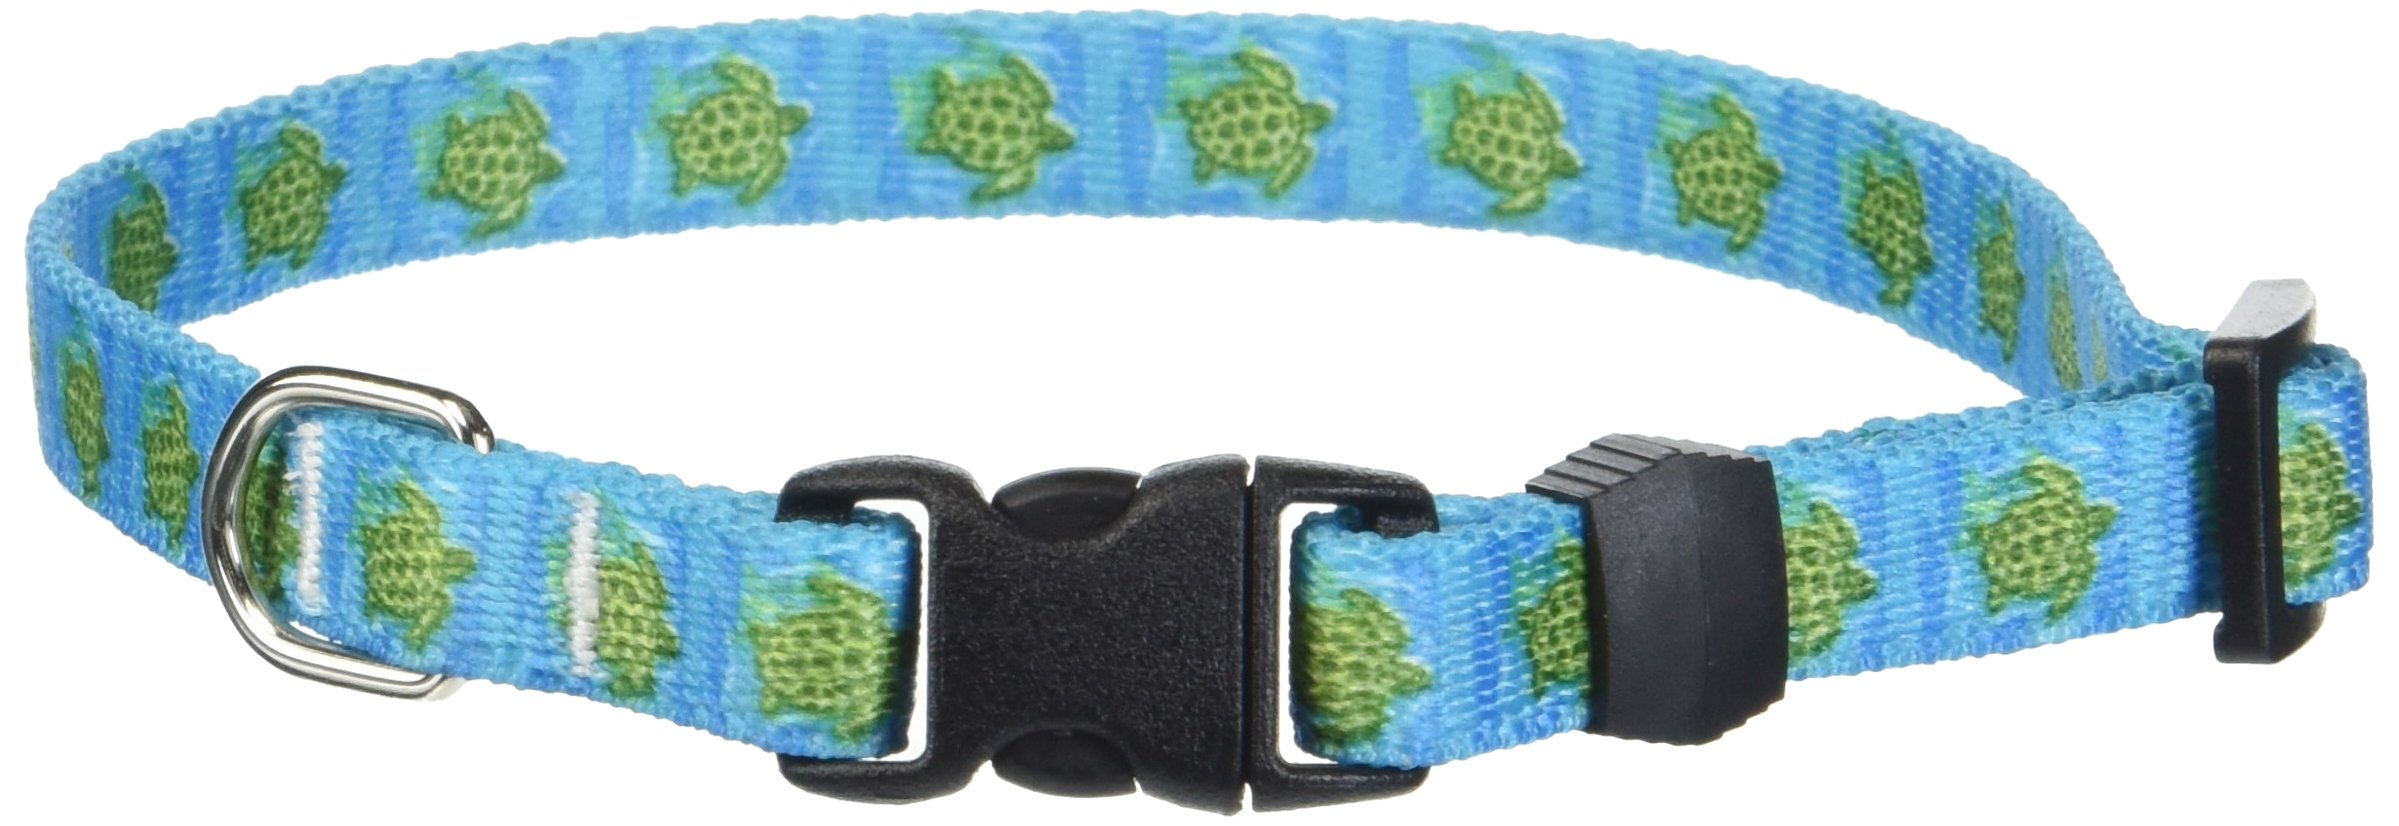 Yellow Dog Design Sea Turtles Dog Collar-Size X-Small-3/8 inch wide and fits neck sizes 8 to 12 inches